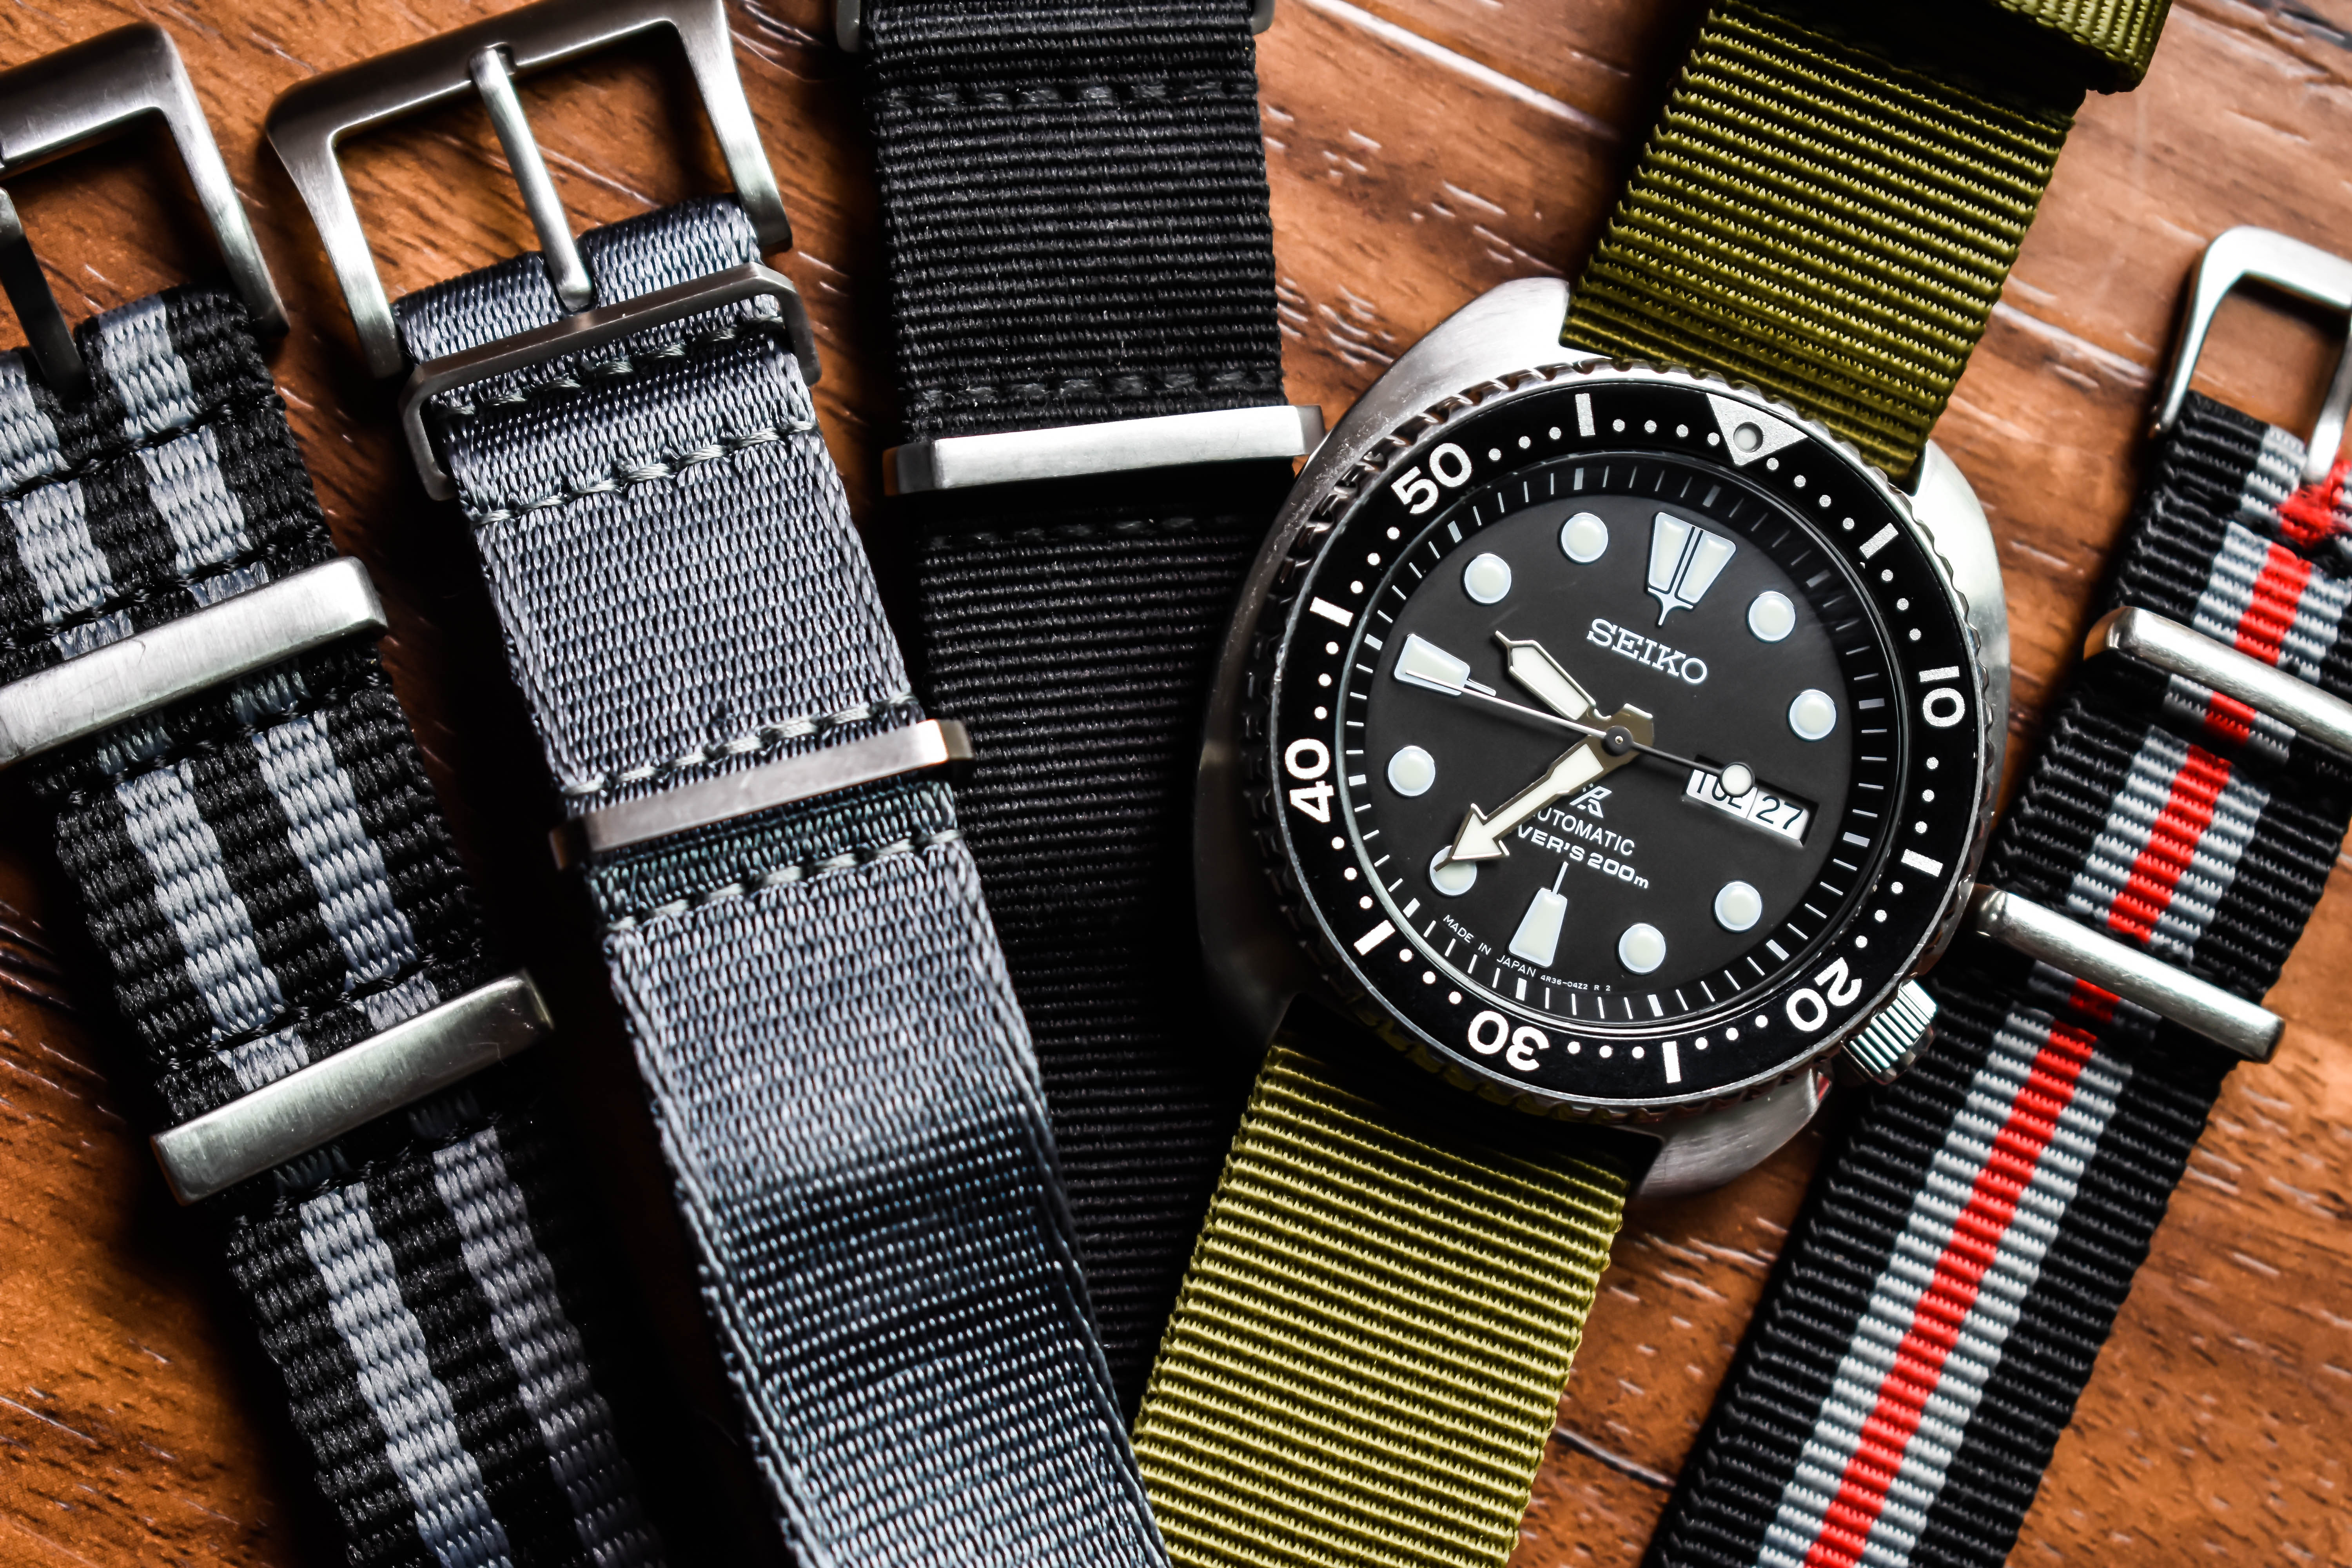 5c485a4e5 Given its rich history and practical design, it really is quite  understandable why the NATO strap has become so popular among WIS and  non-WIS alike.